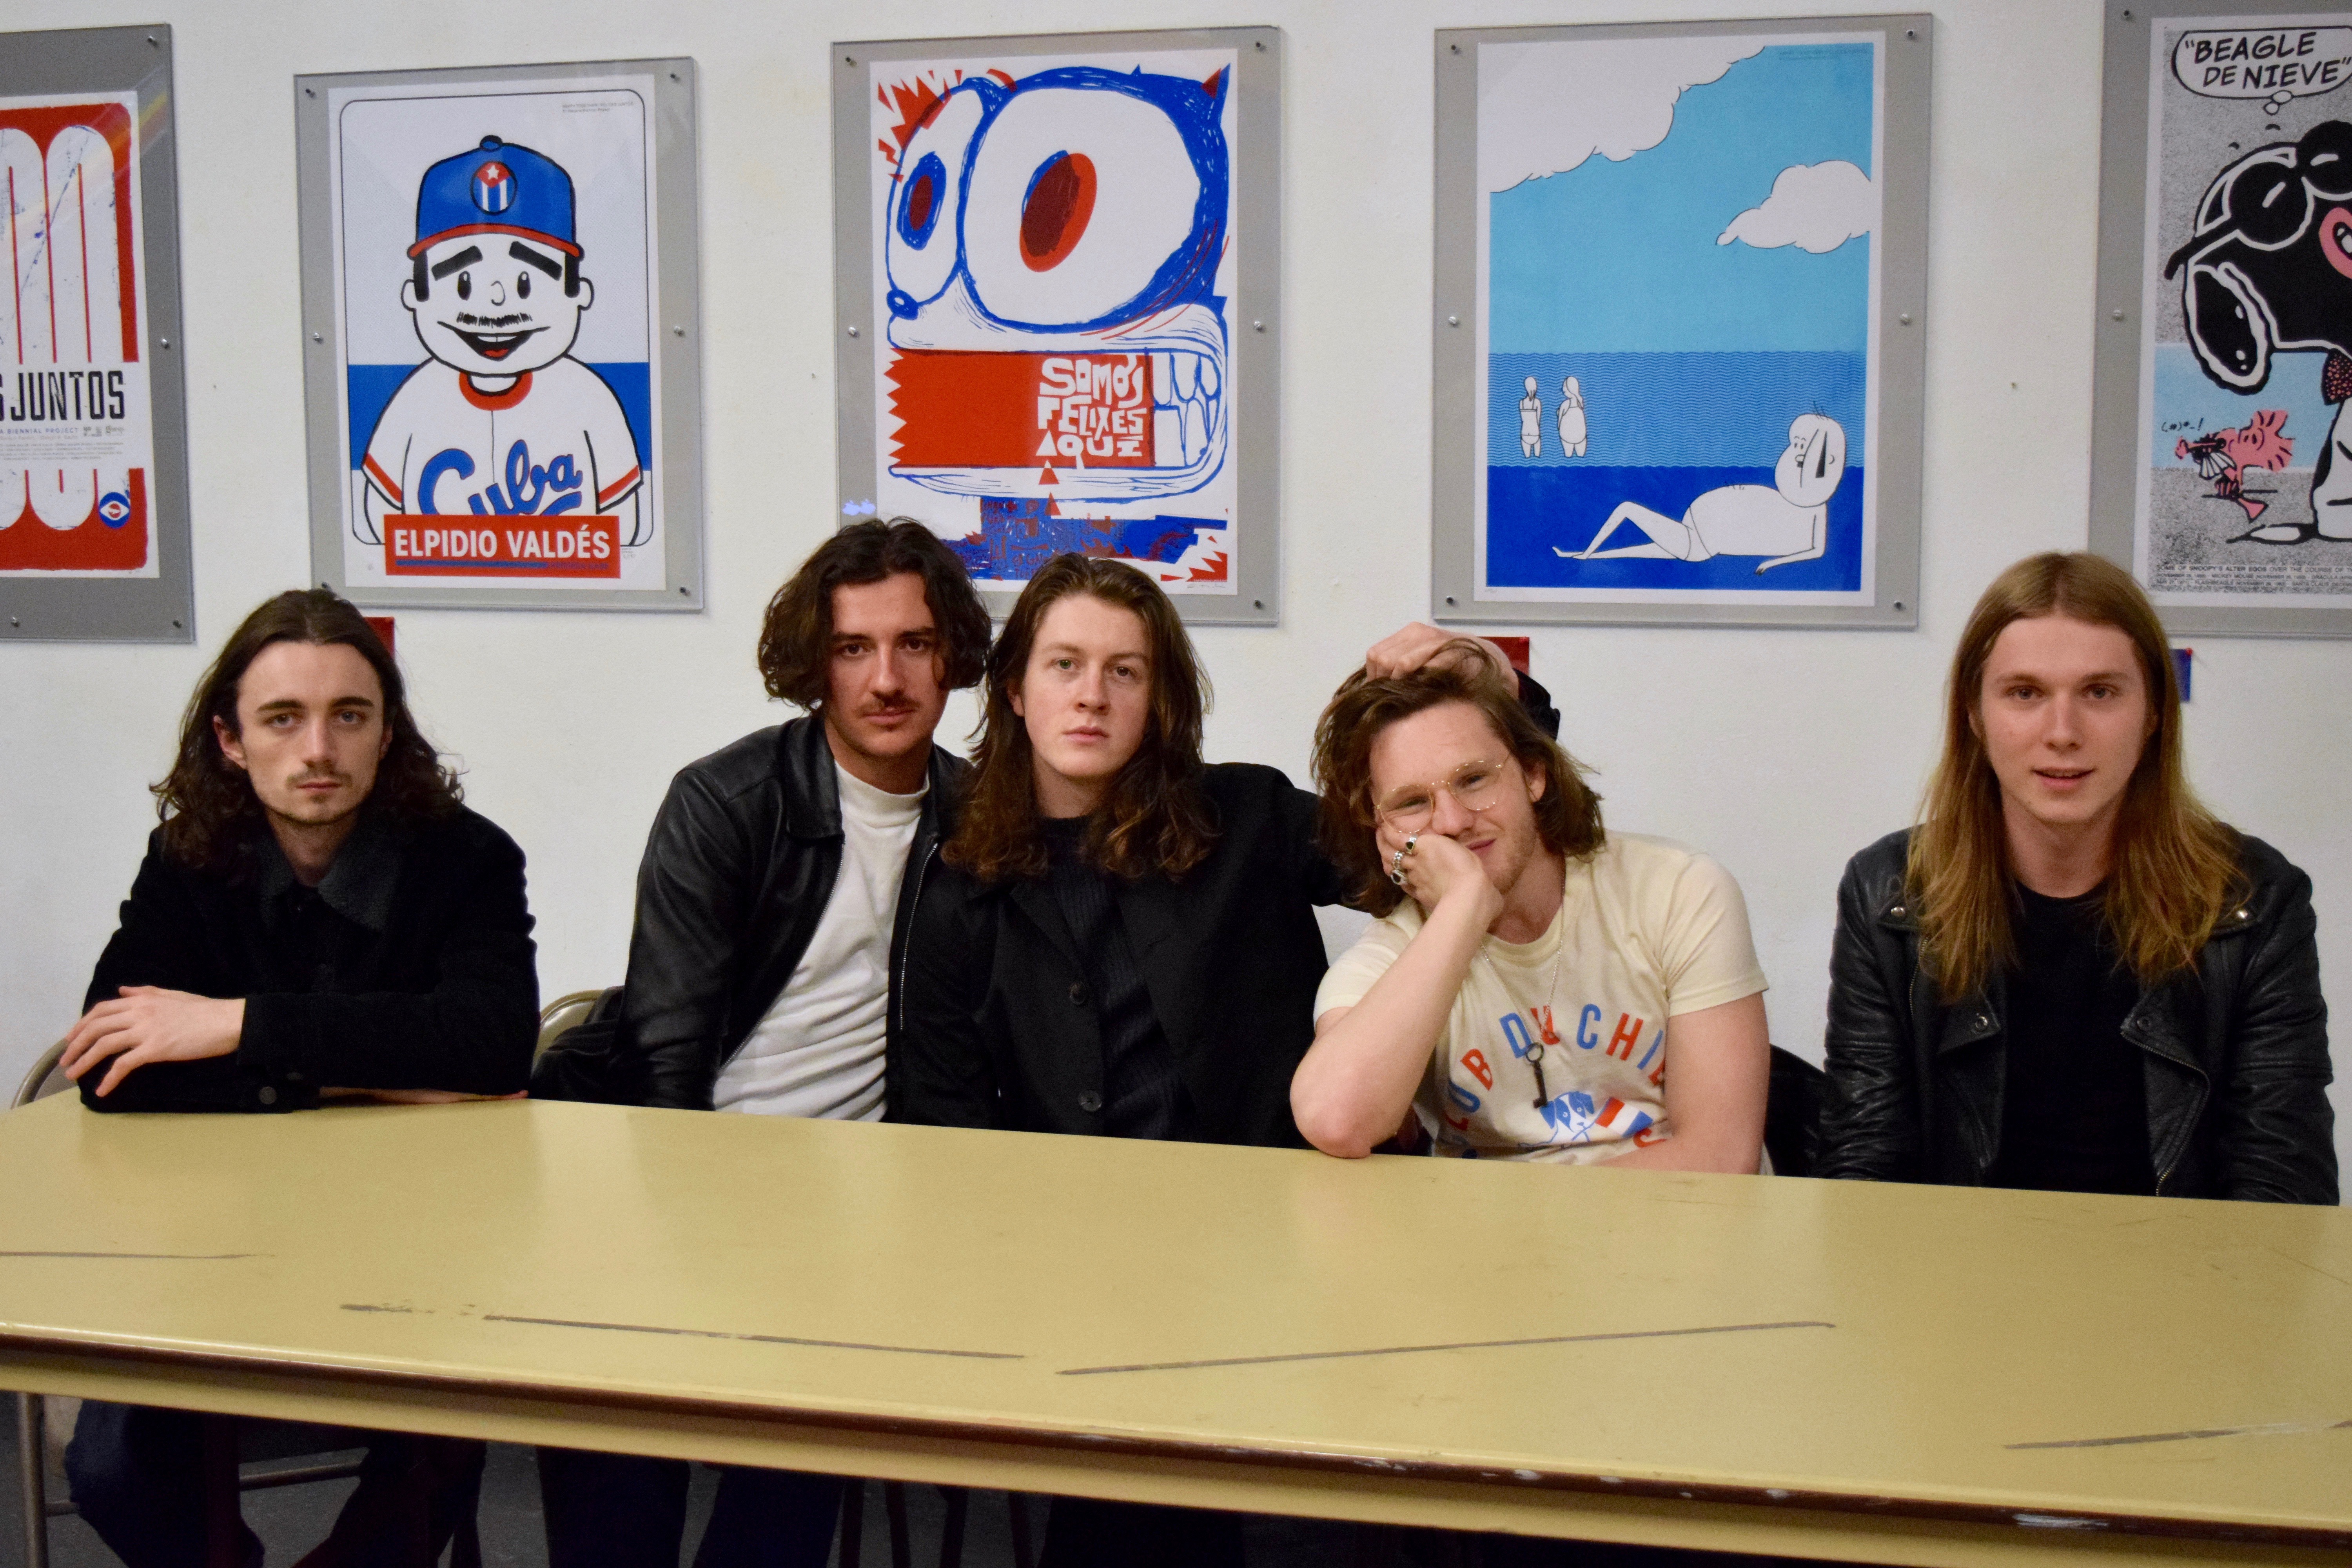 British Blossoms Play on American Soil